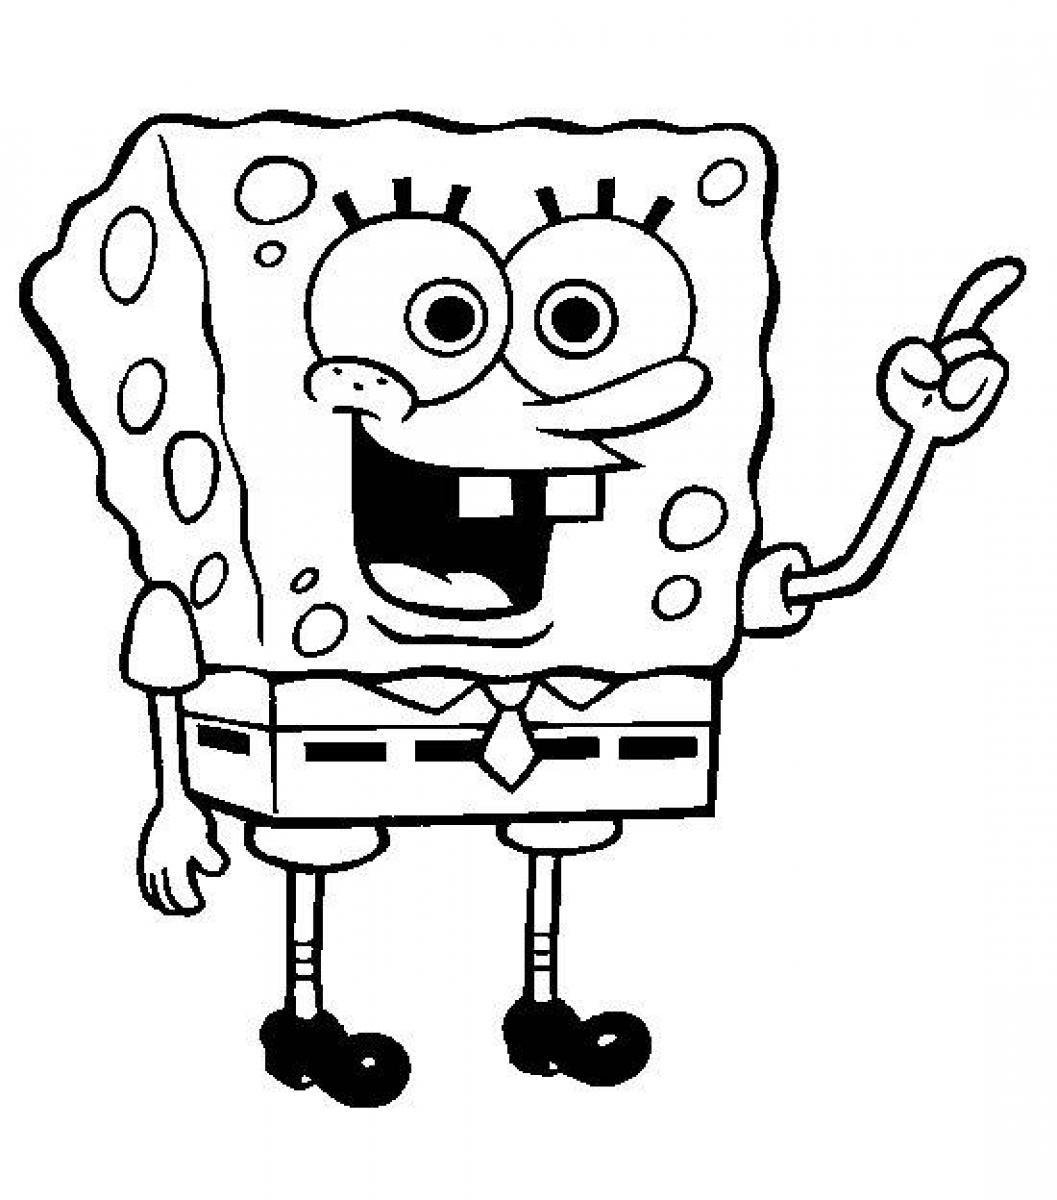 Online Spongebob Squarepants Coloring Page 34 On Seasonal